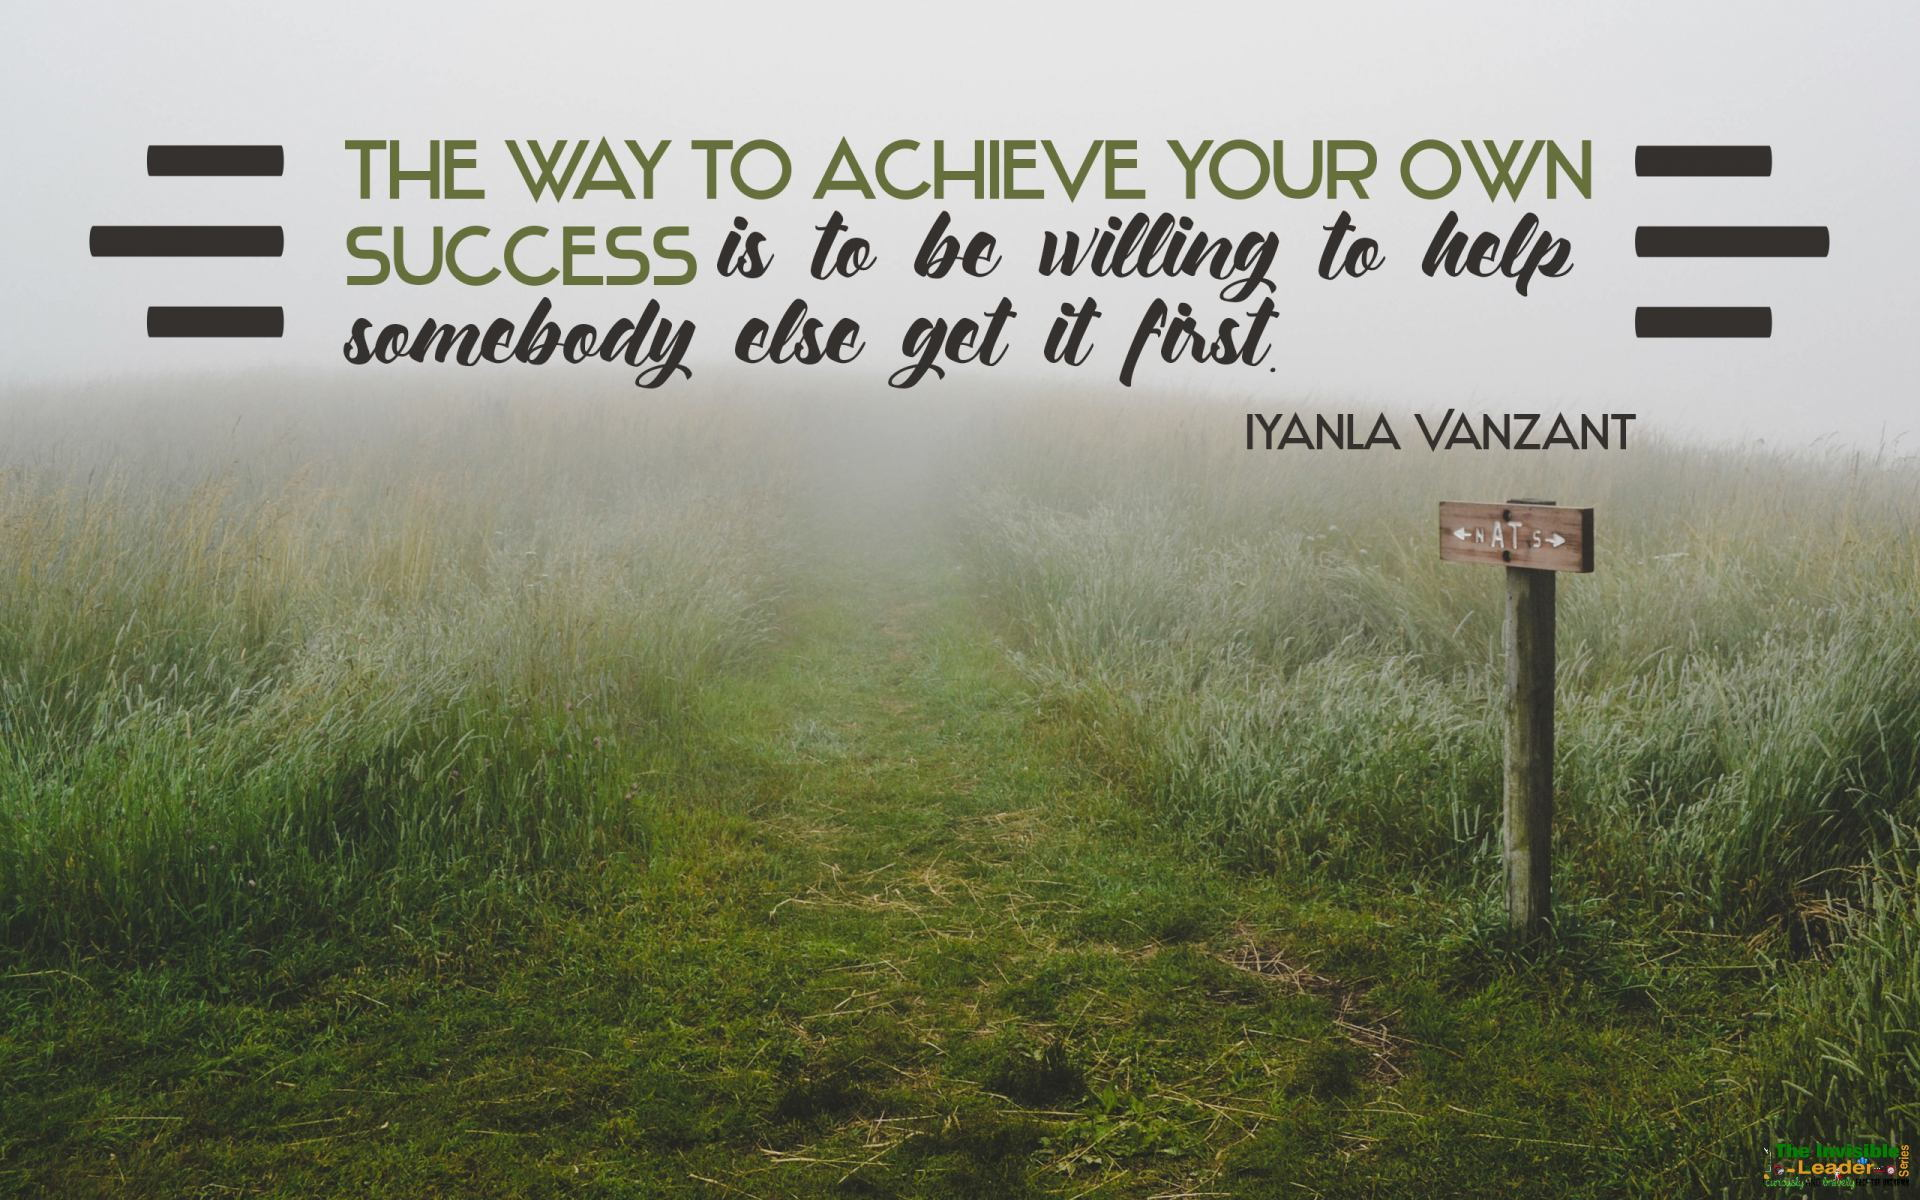 """The way to achieve your own success is to be willing to help somebody else get it first."" Iyanla Vanzant [1920×1200]"